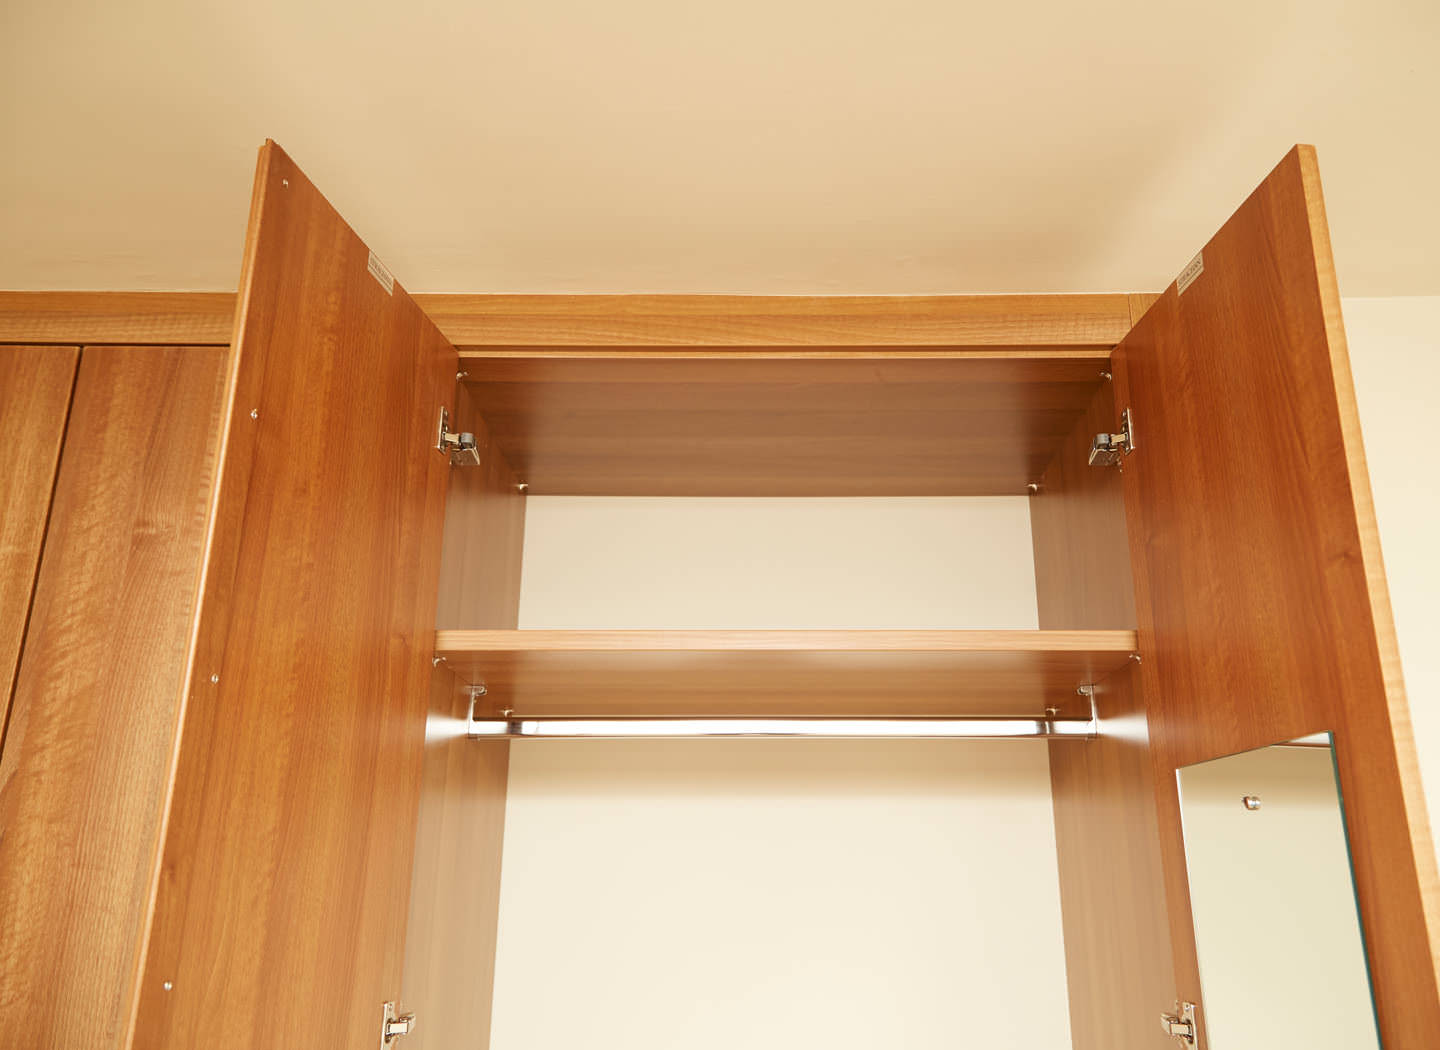 Case study showing internal detail of fitted wardrobe